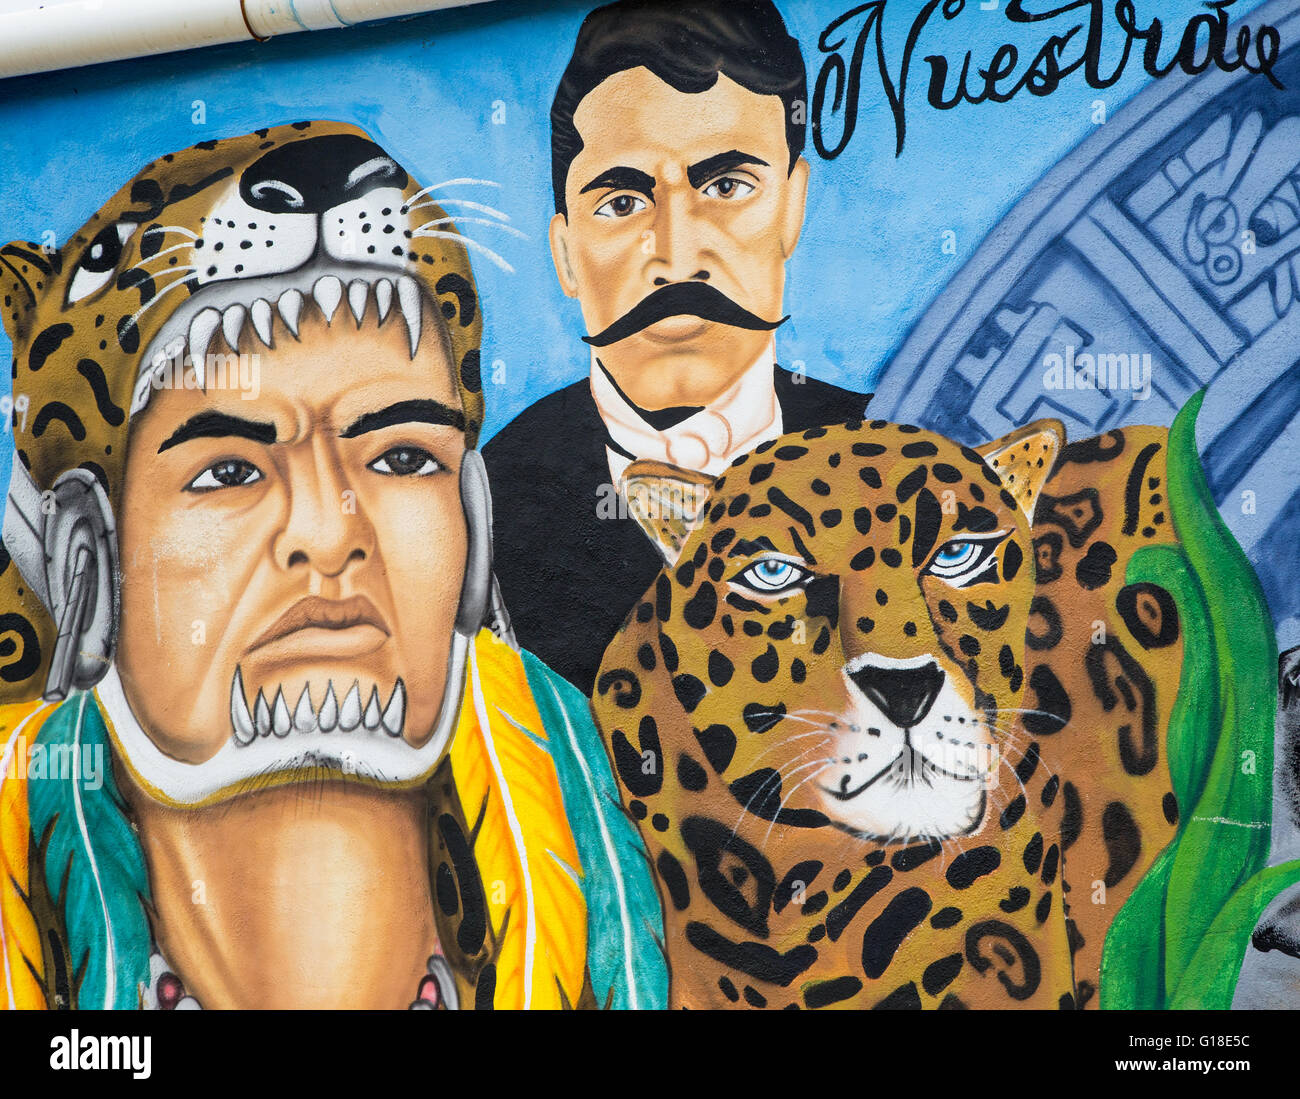 Urban art depicting Mexican Indian with headdress, leopard and modern Mexican man in city of Jalpan de Serra, Querétaro, - Stock Image